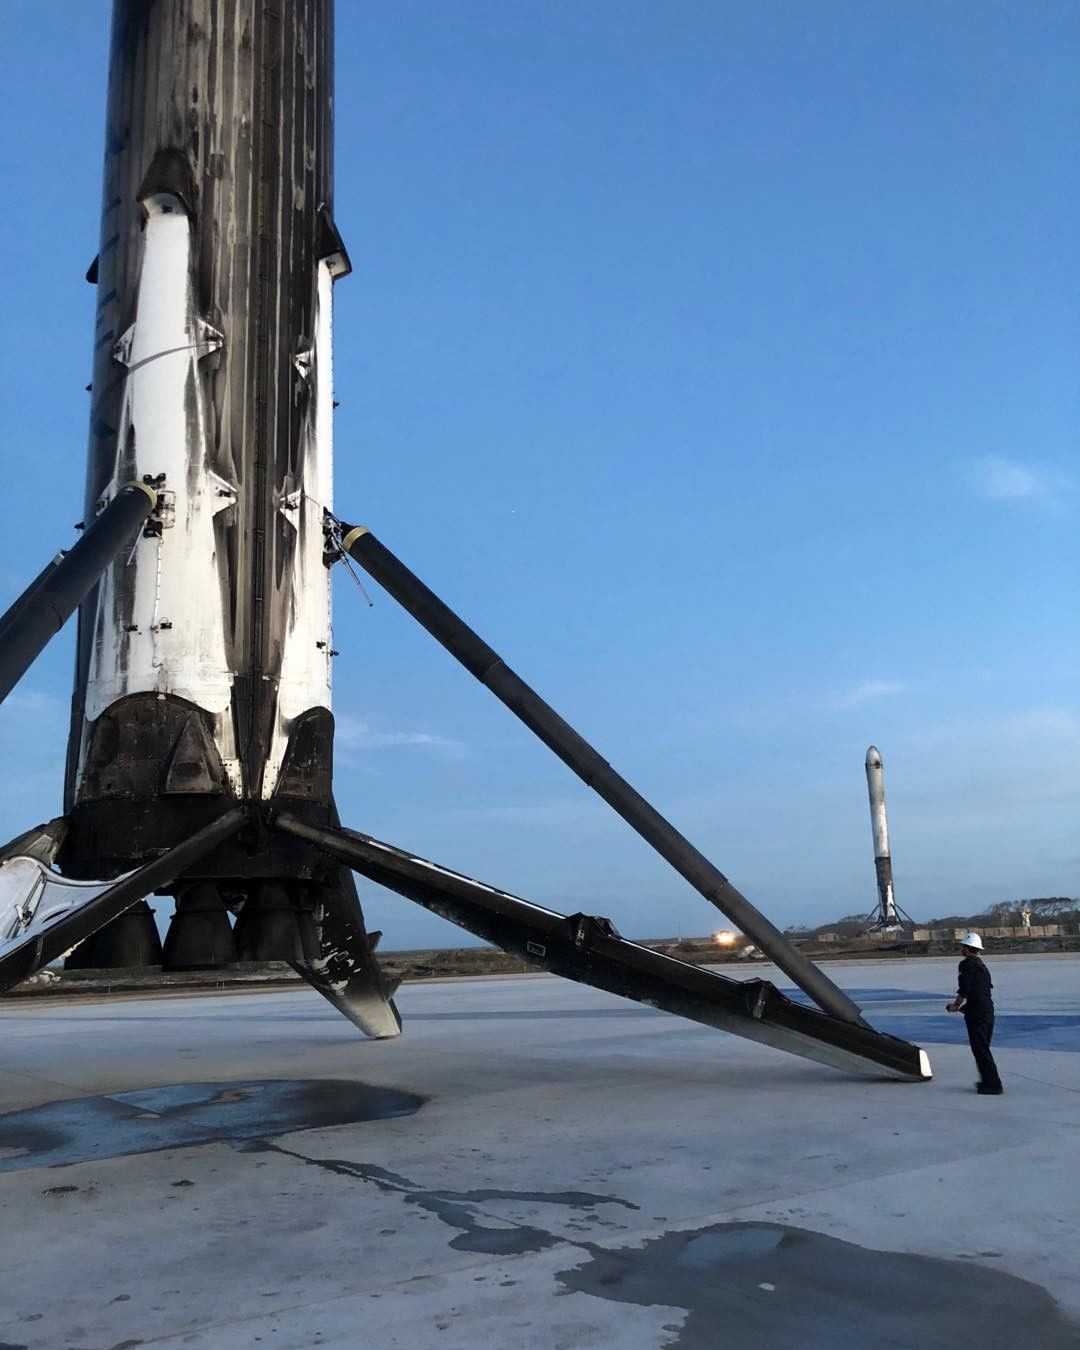 LZ2 with Falcon Heavy boosters (Elon Musk)